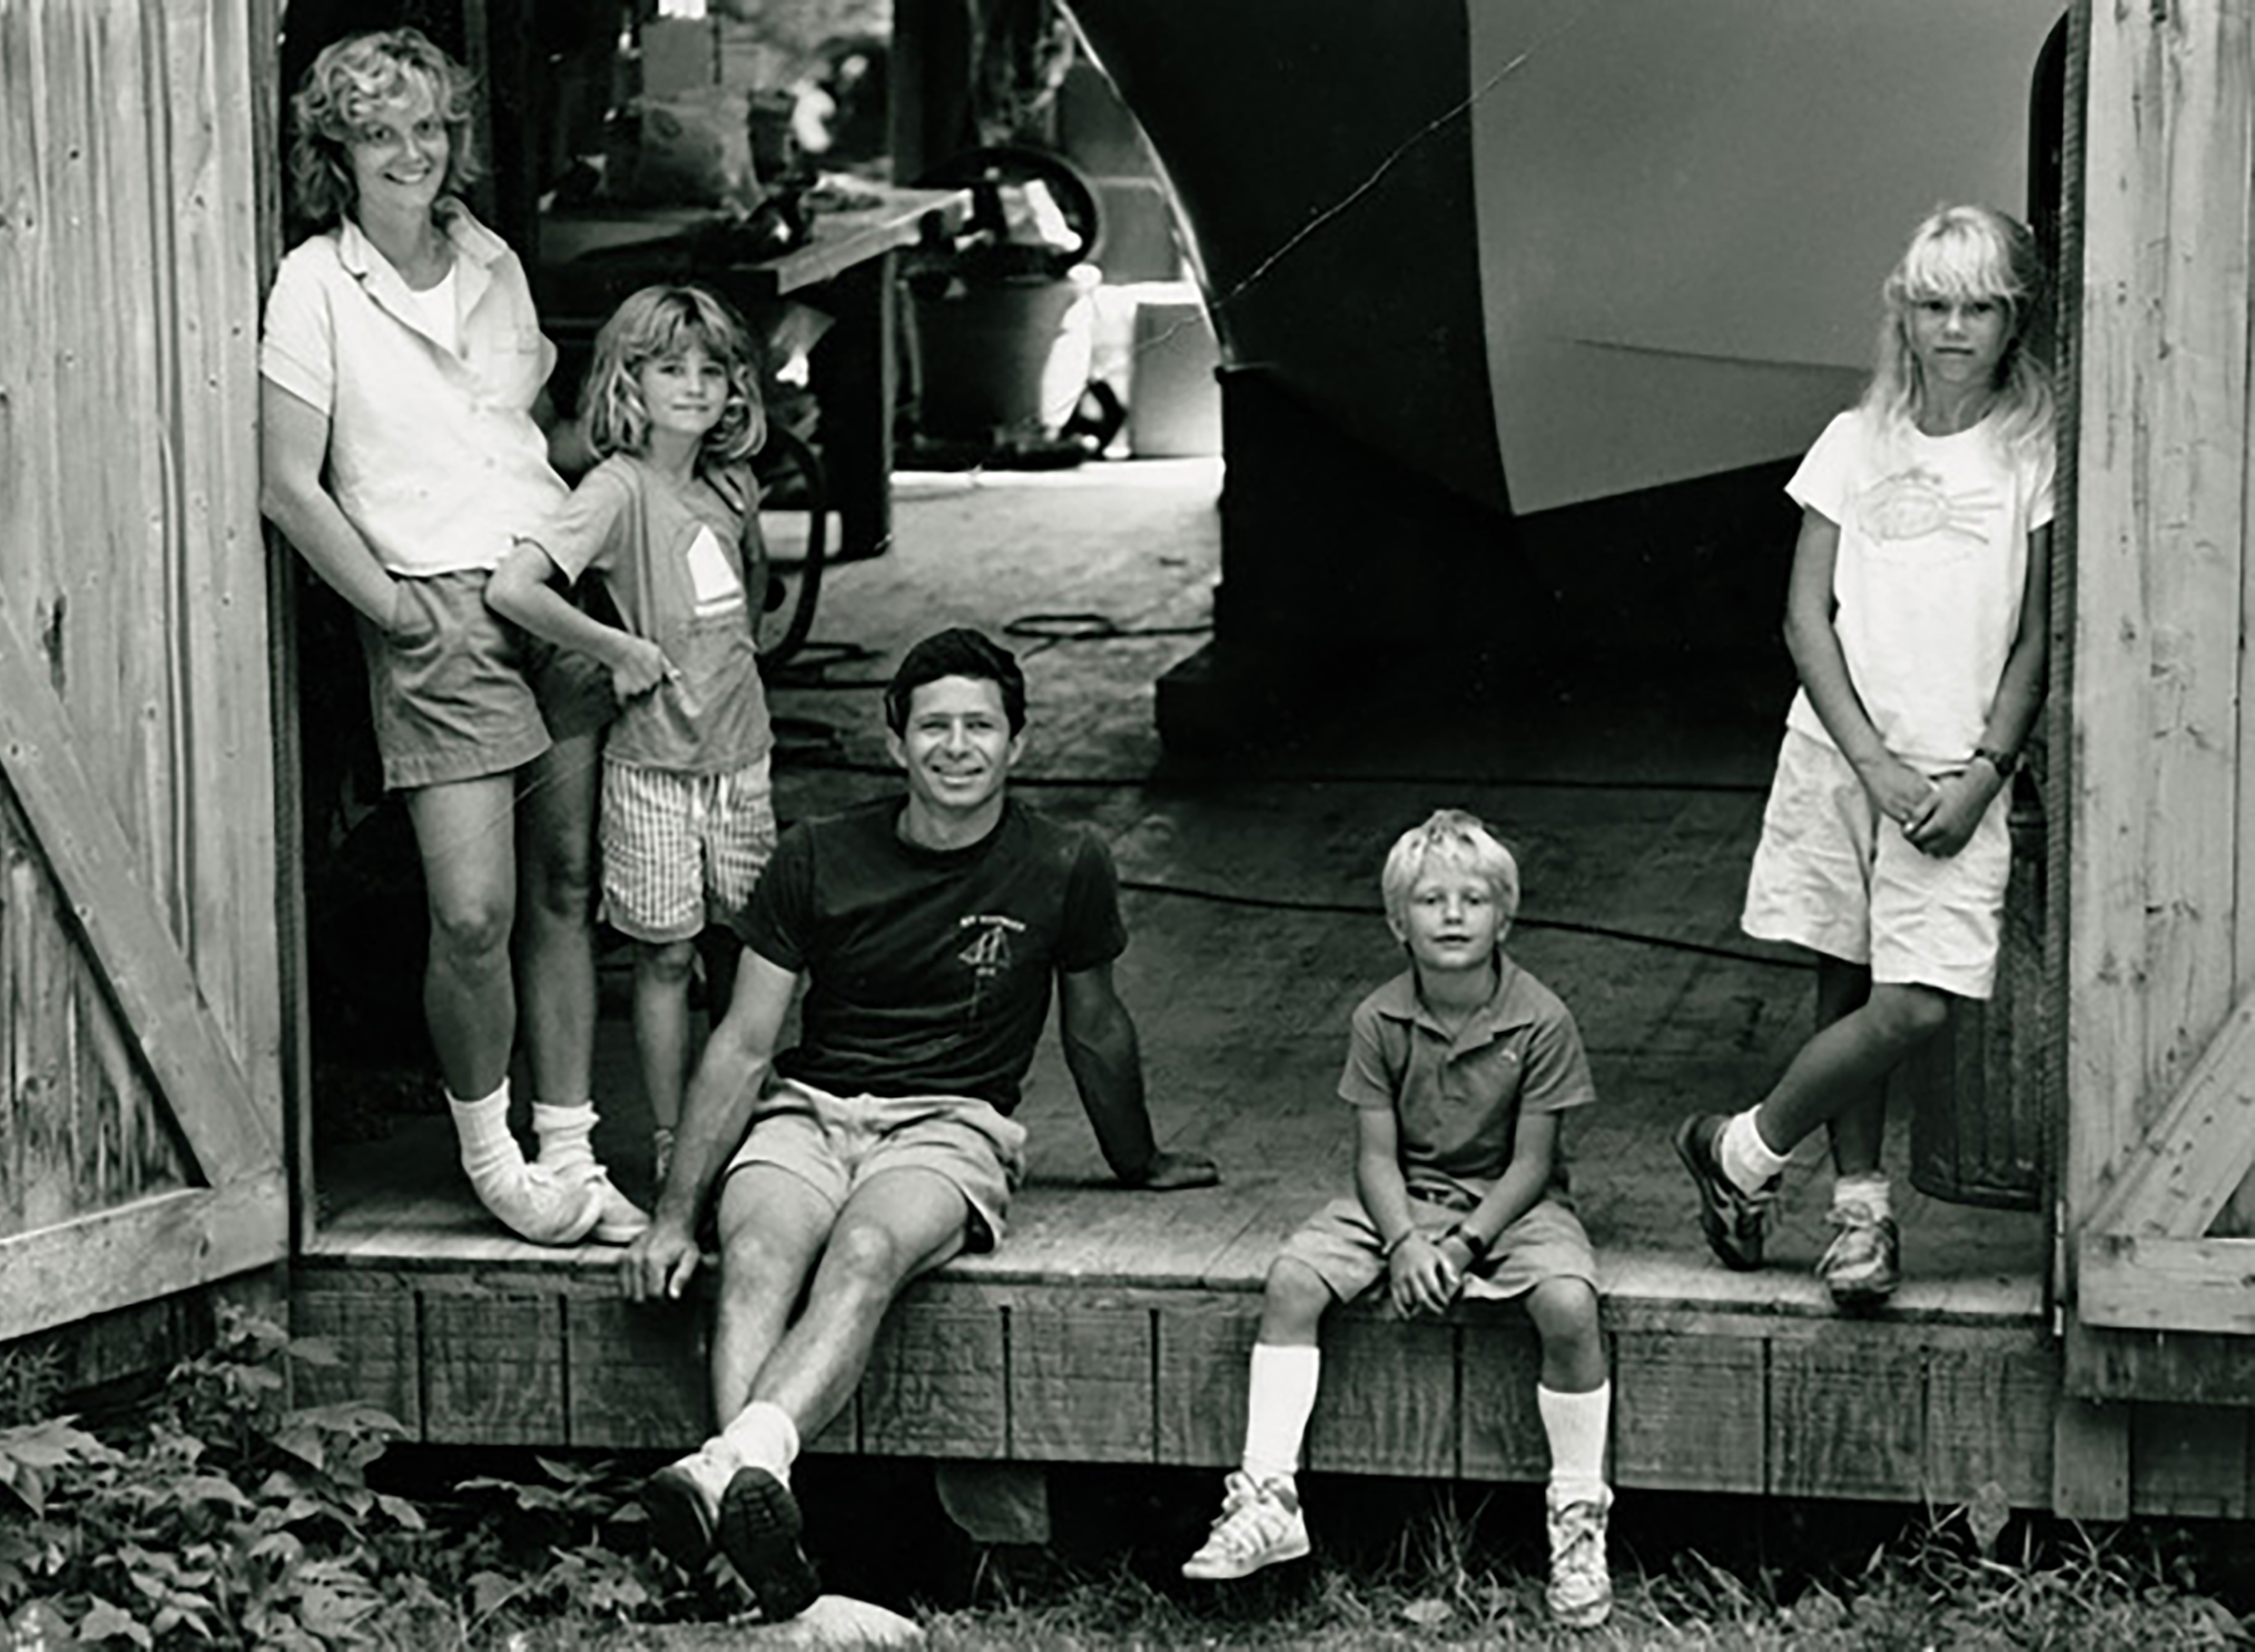 Charlie and Chellie with their three children